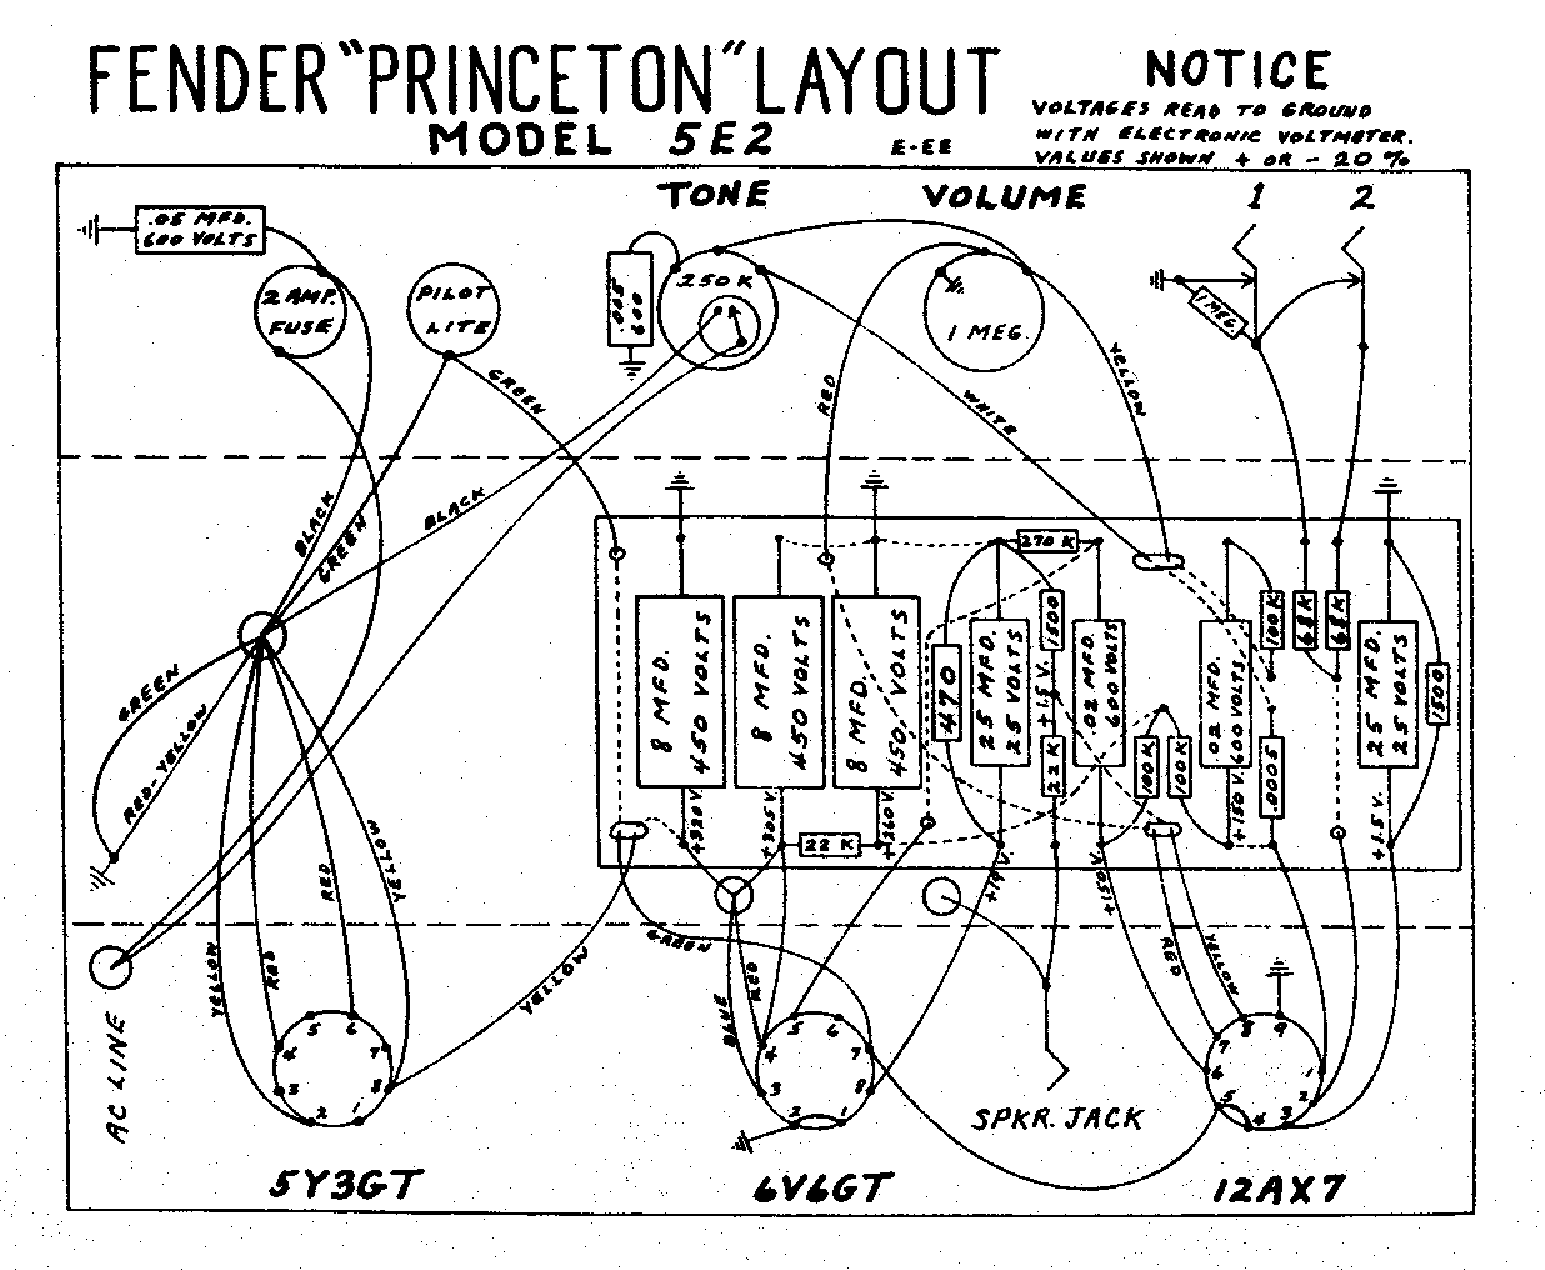 FENDER PRINCETON-5E2-LAYOUT Service Manual download